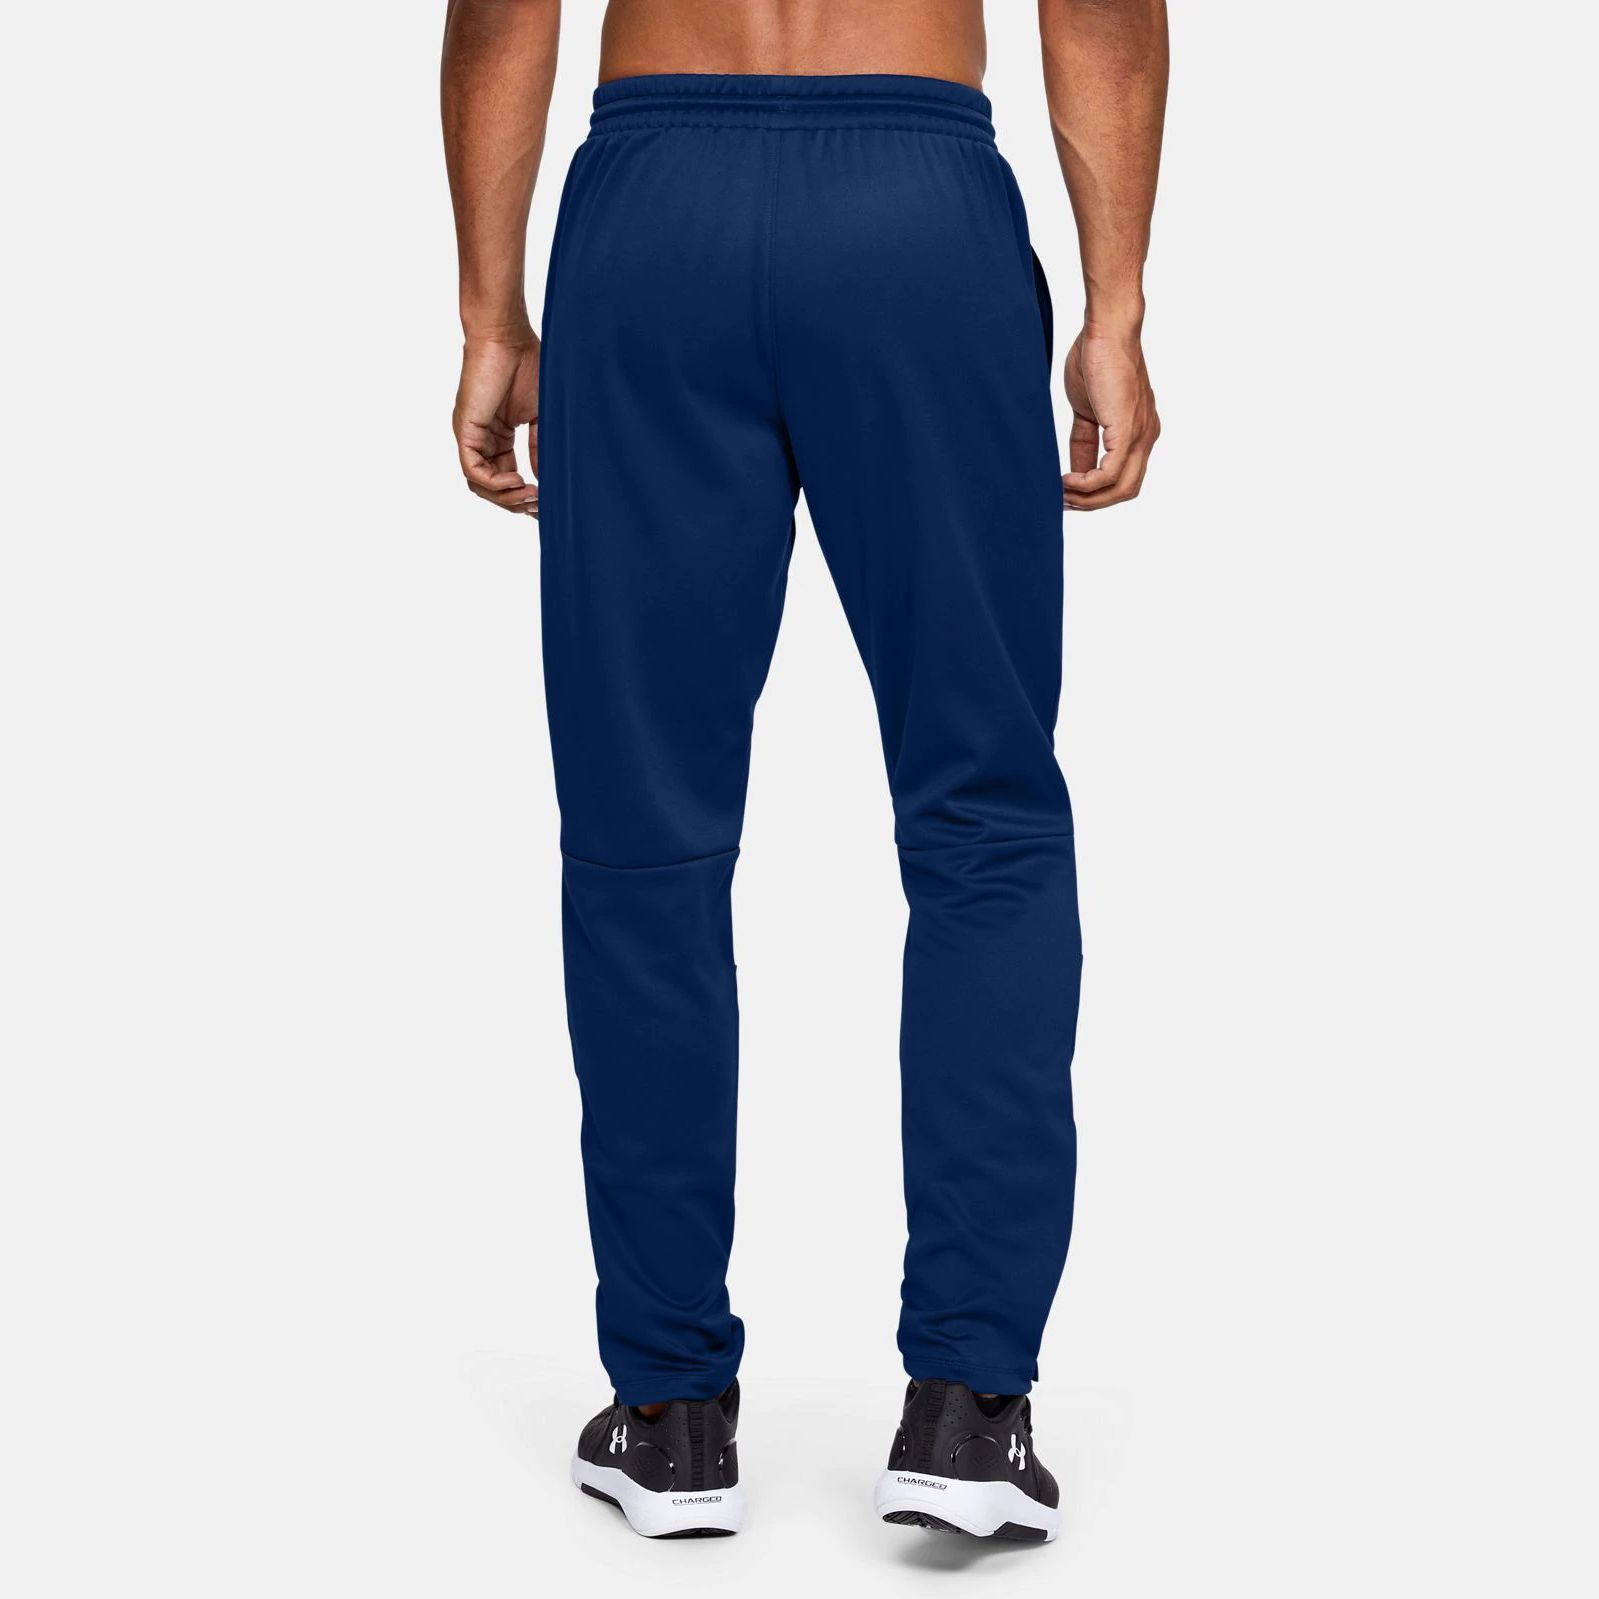 Clothing -  under armour MK-1 Warm-Up Pants 5280